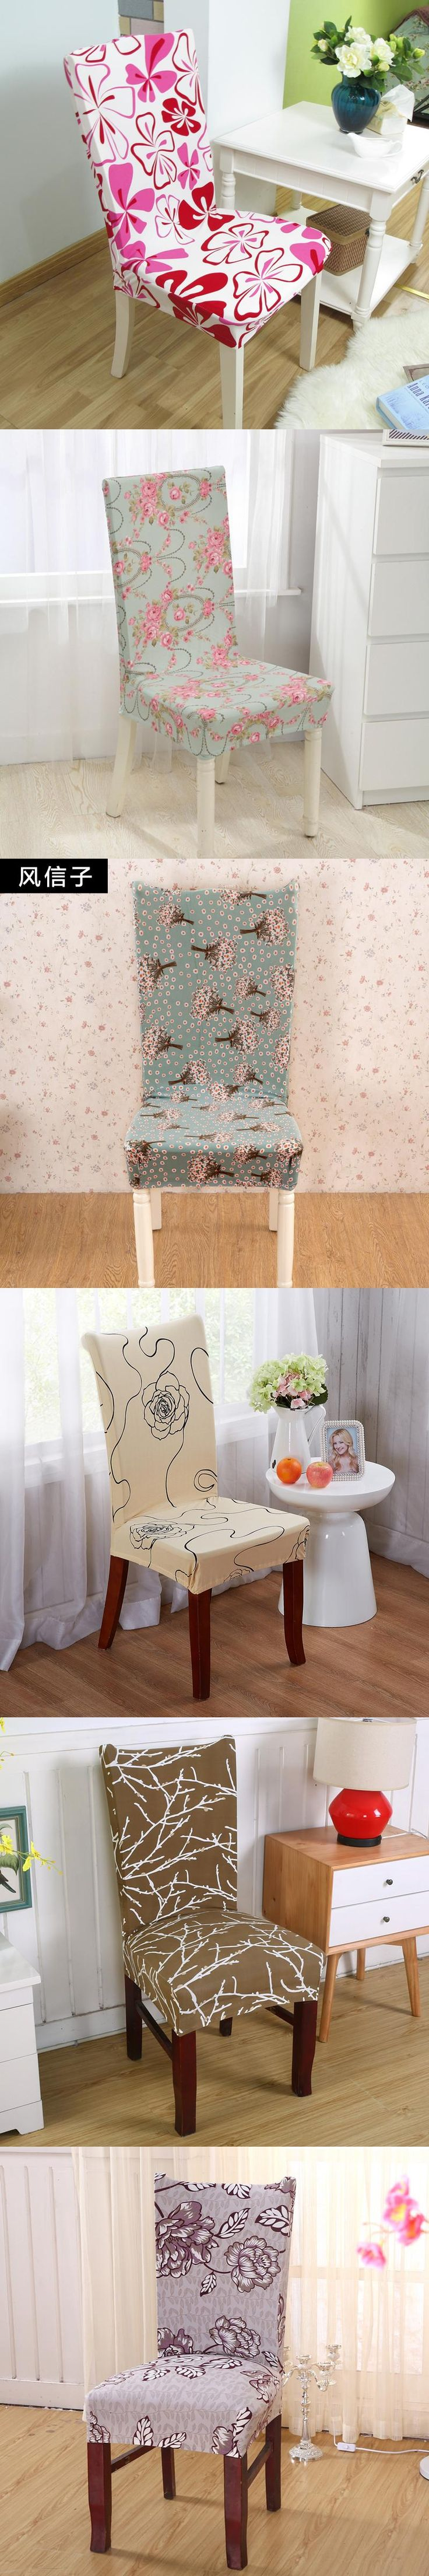 1 Piece Printing Polyester Spandex Party Chair Covers Gold Elastic Dining Chair Cover For Wedding Banquet Hotel Chair Covers V20